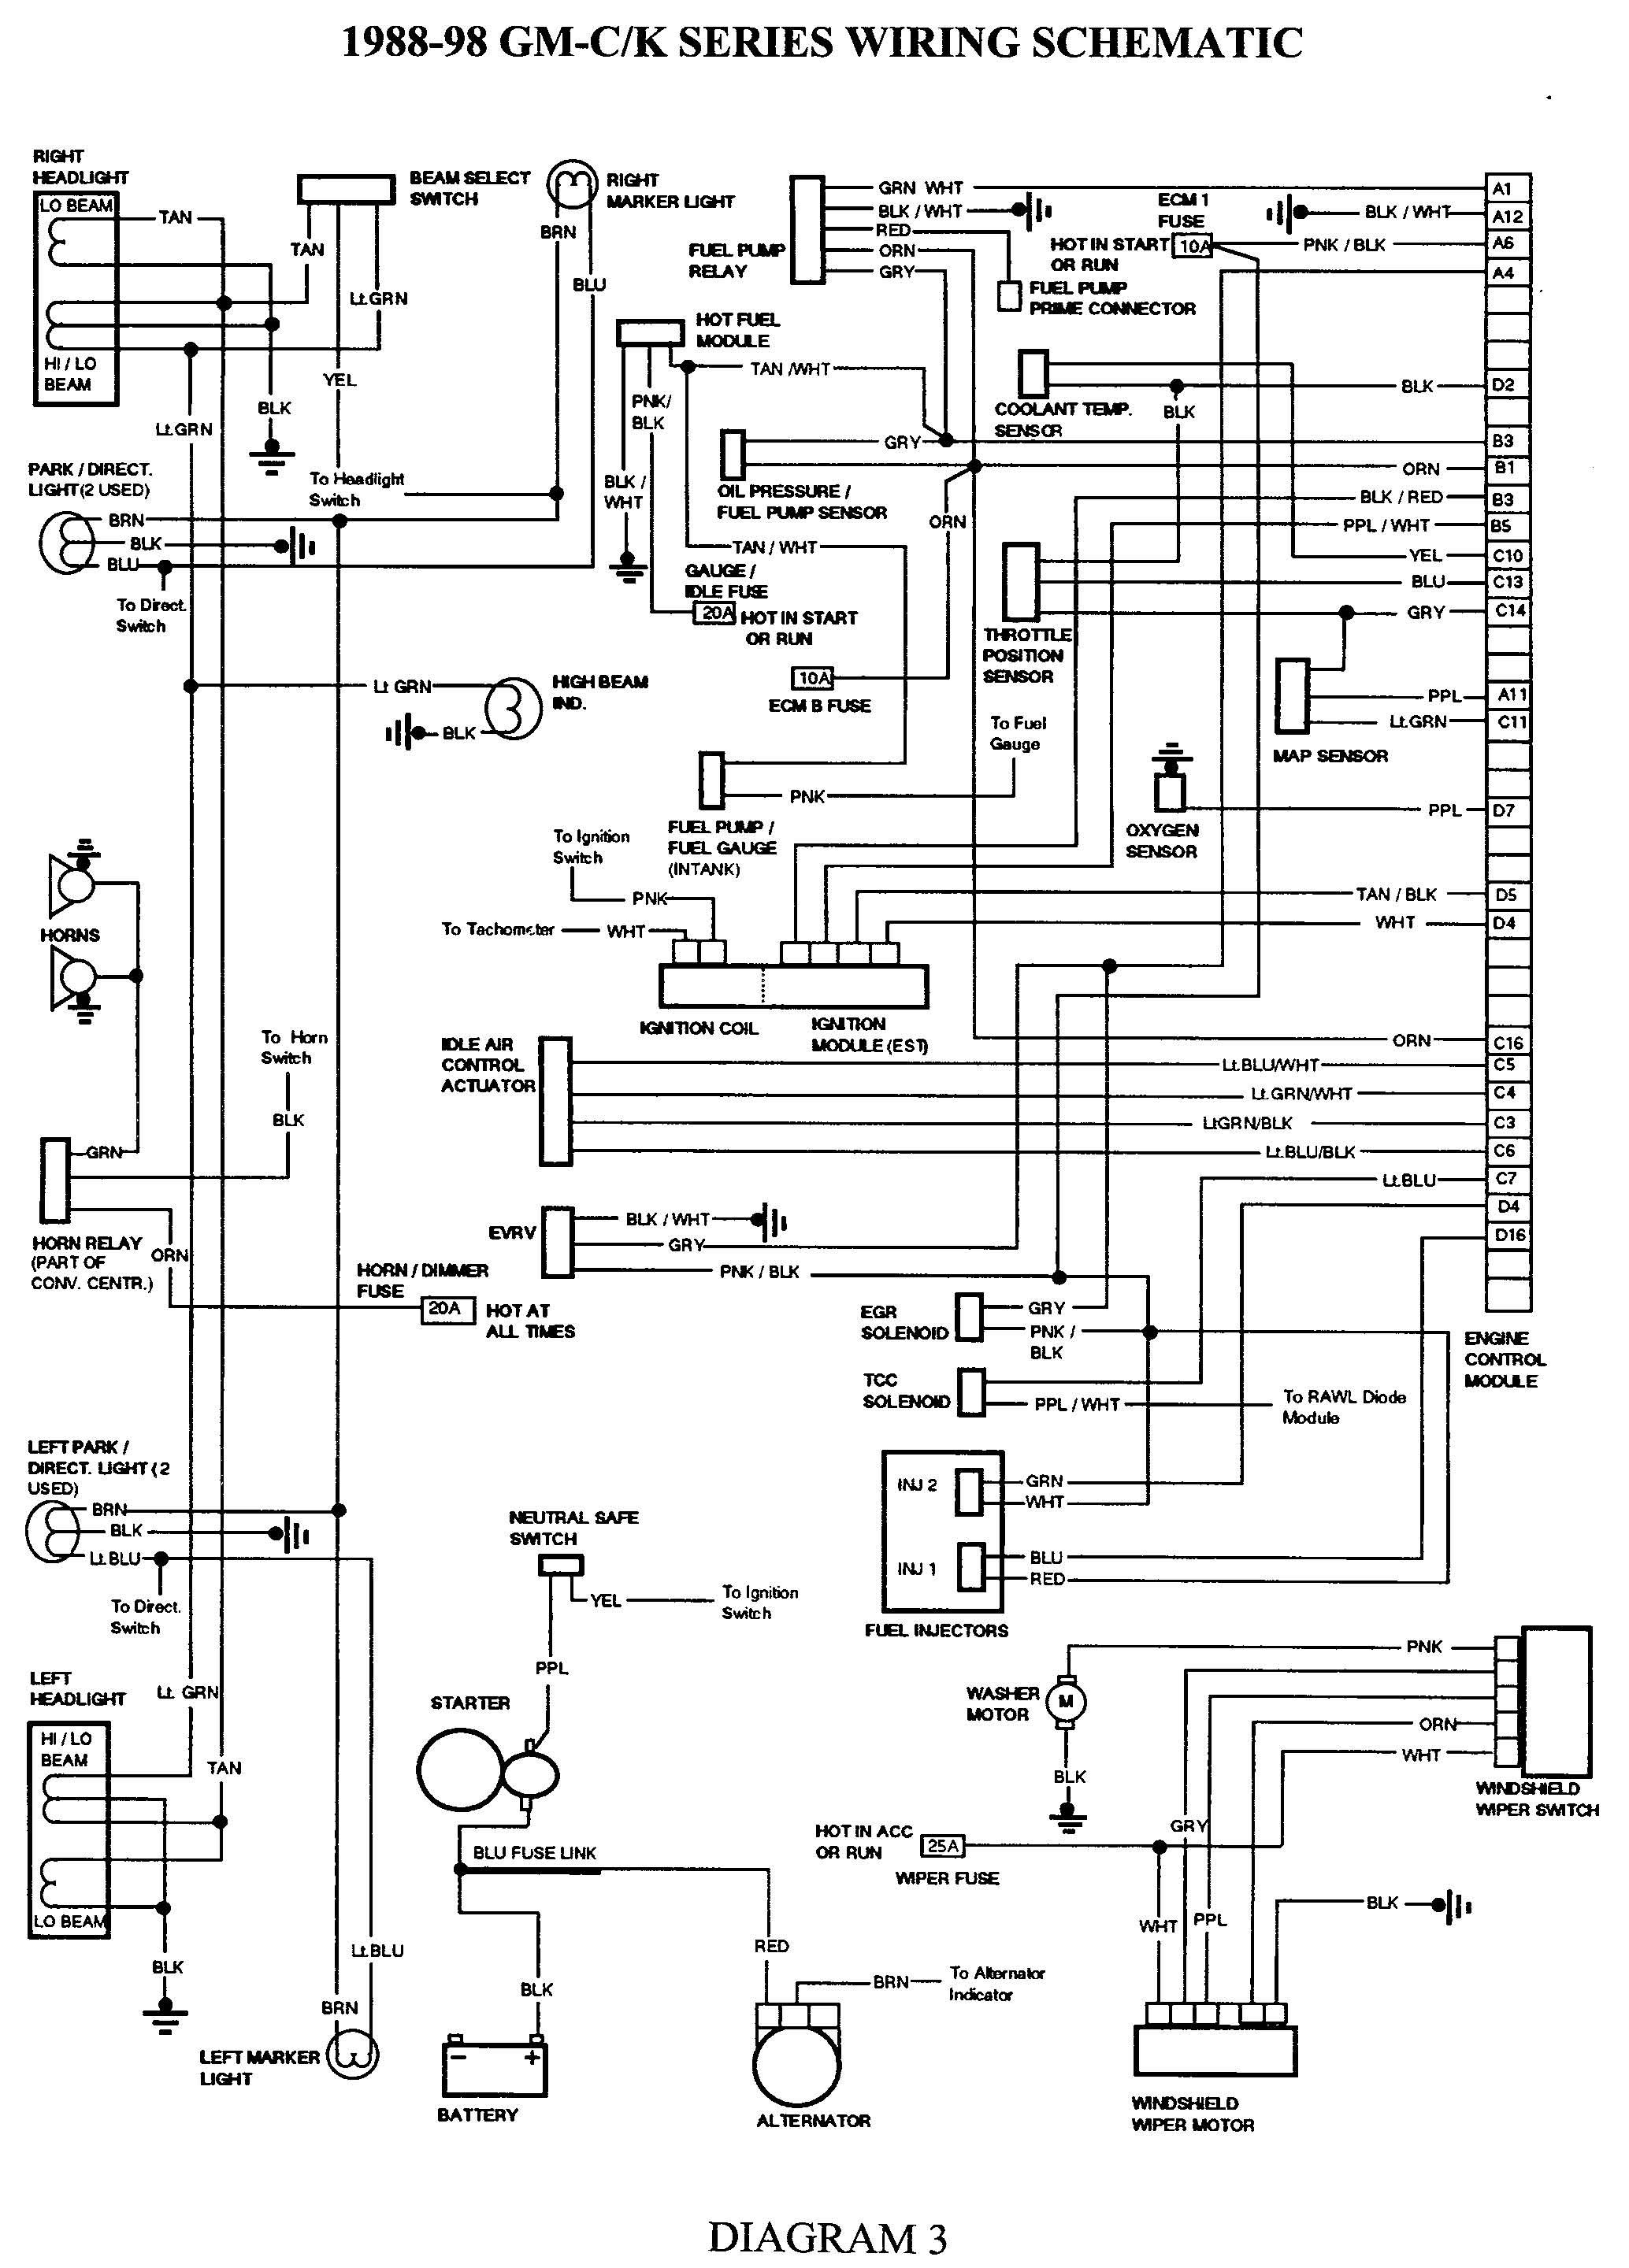 b2f2e5dbdc07dada83ef514f6d4ce3d4 honda power window wire diagram diagrams for car repairs 2008 chevy silverado wiring diagram at honlapkeszites.co